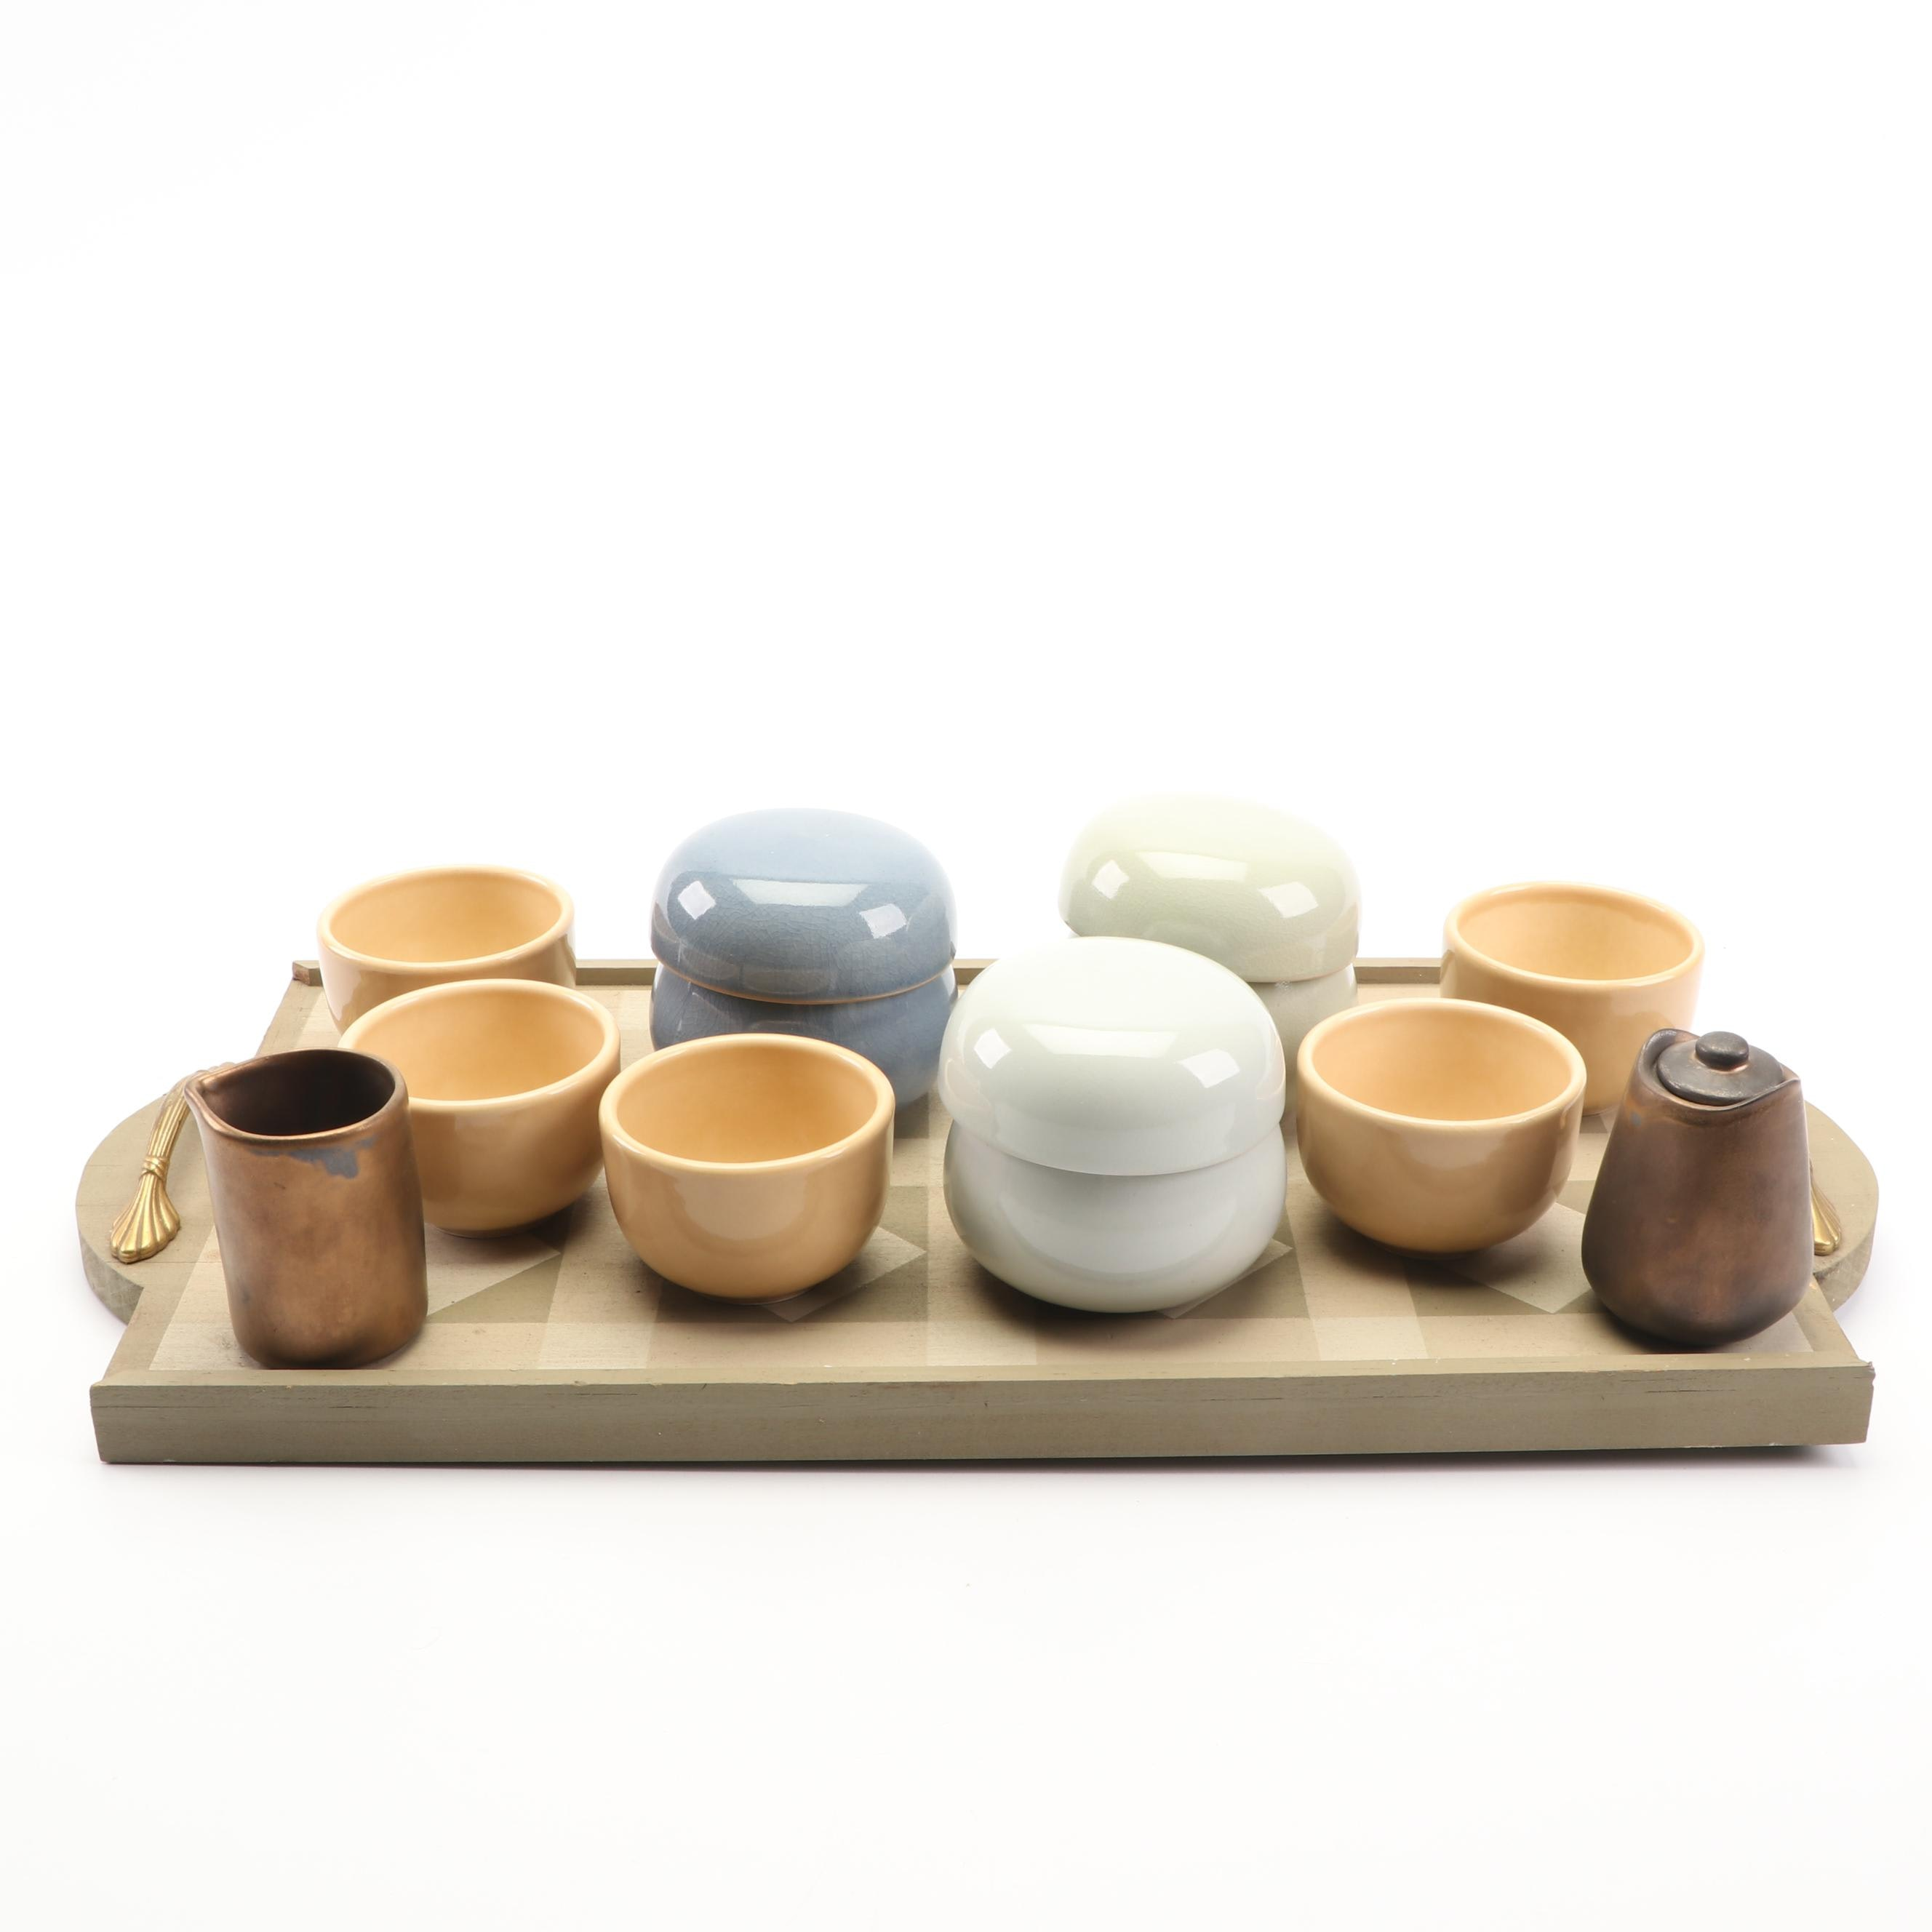 Ceramic Tea Bowls, Butter Bells and Cream and Sugar Set with Wood Tray